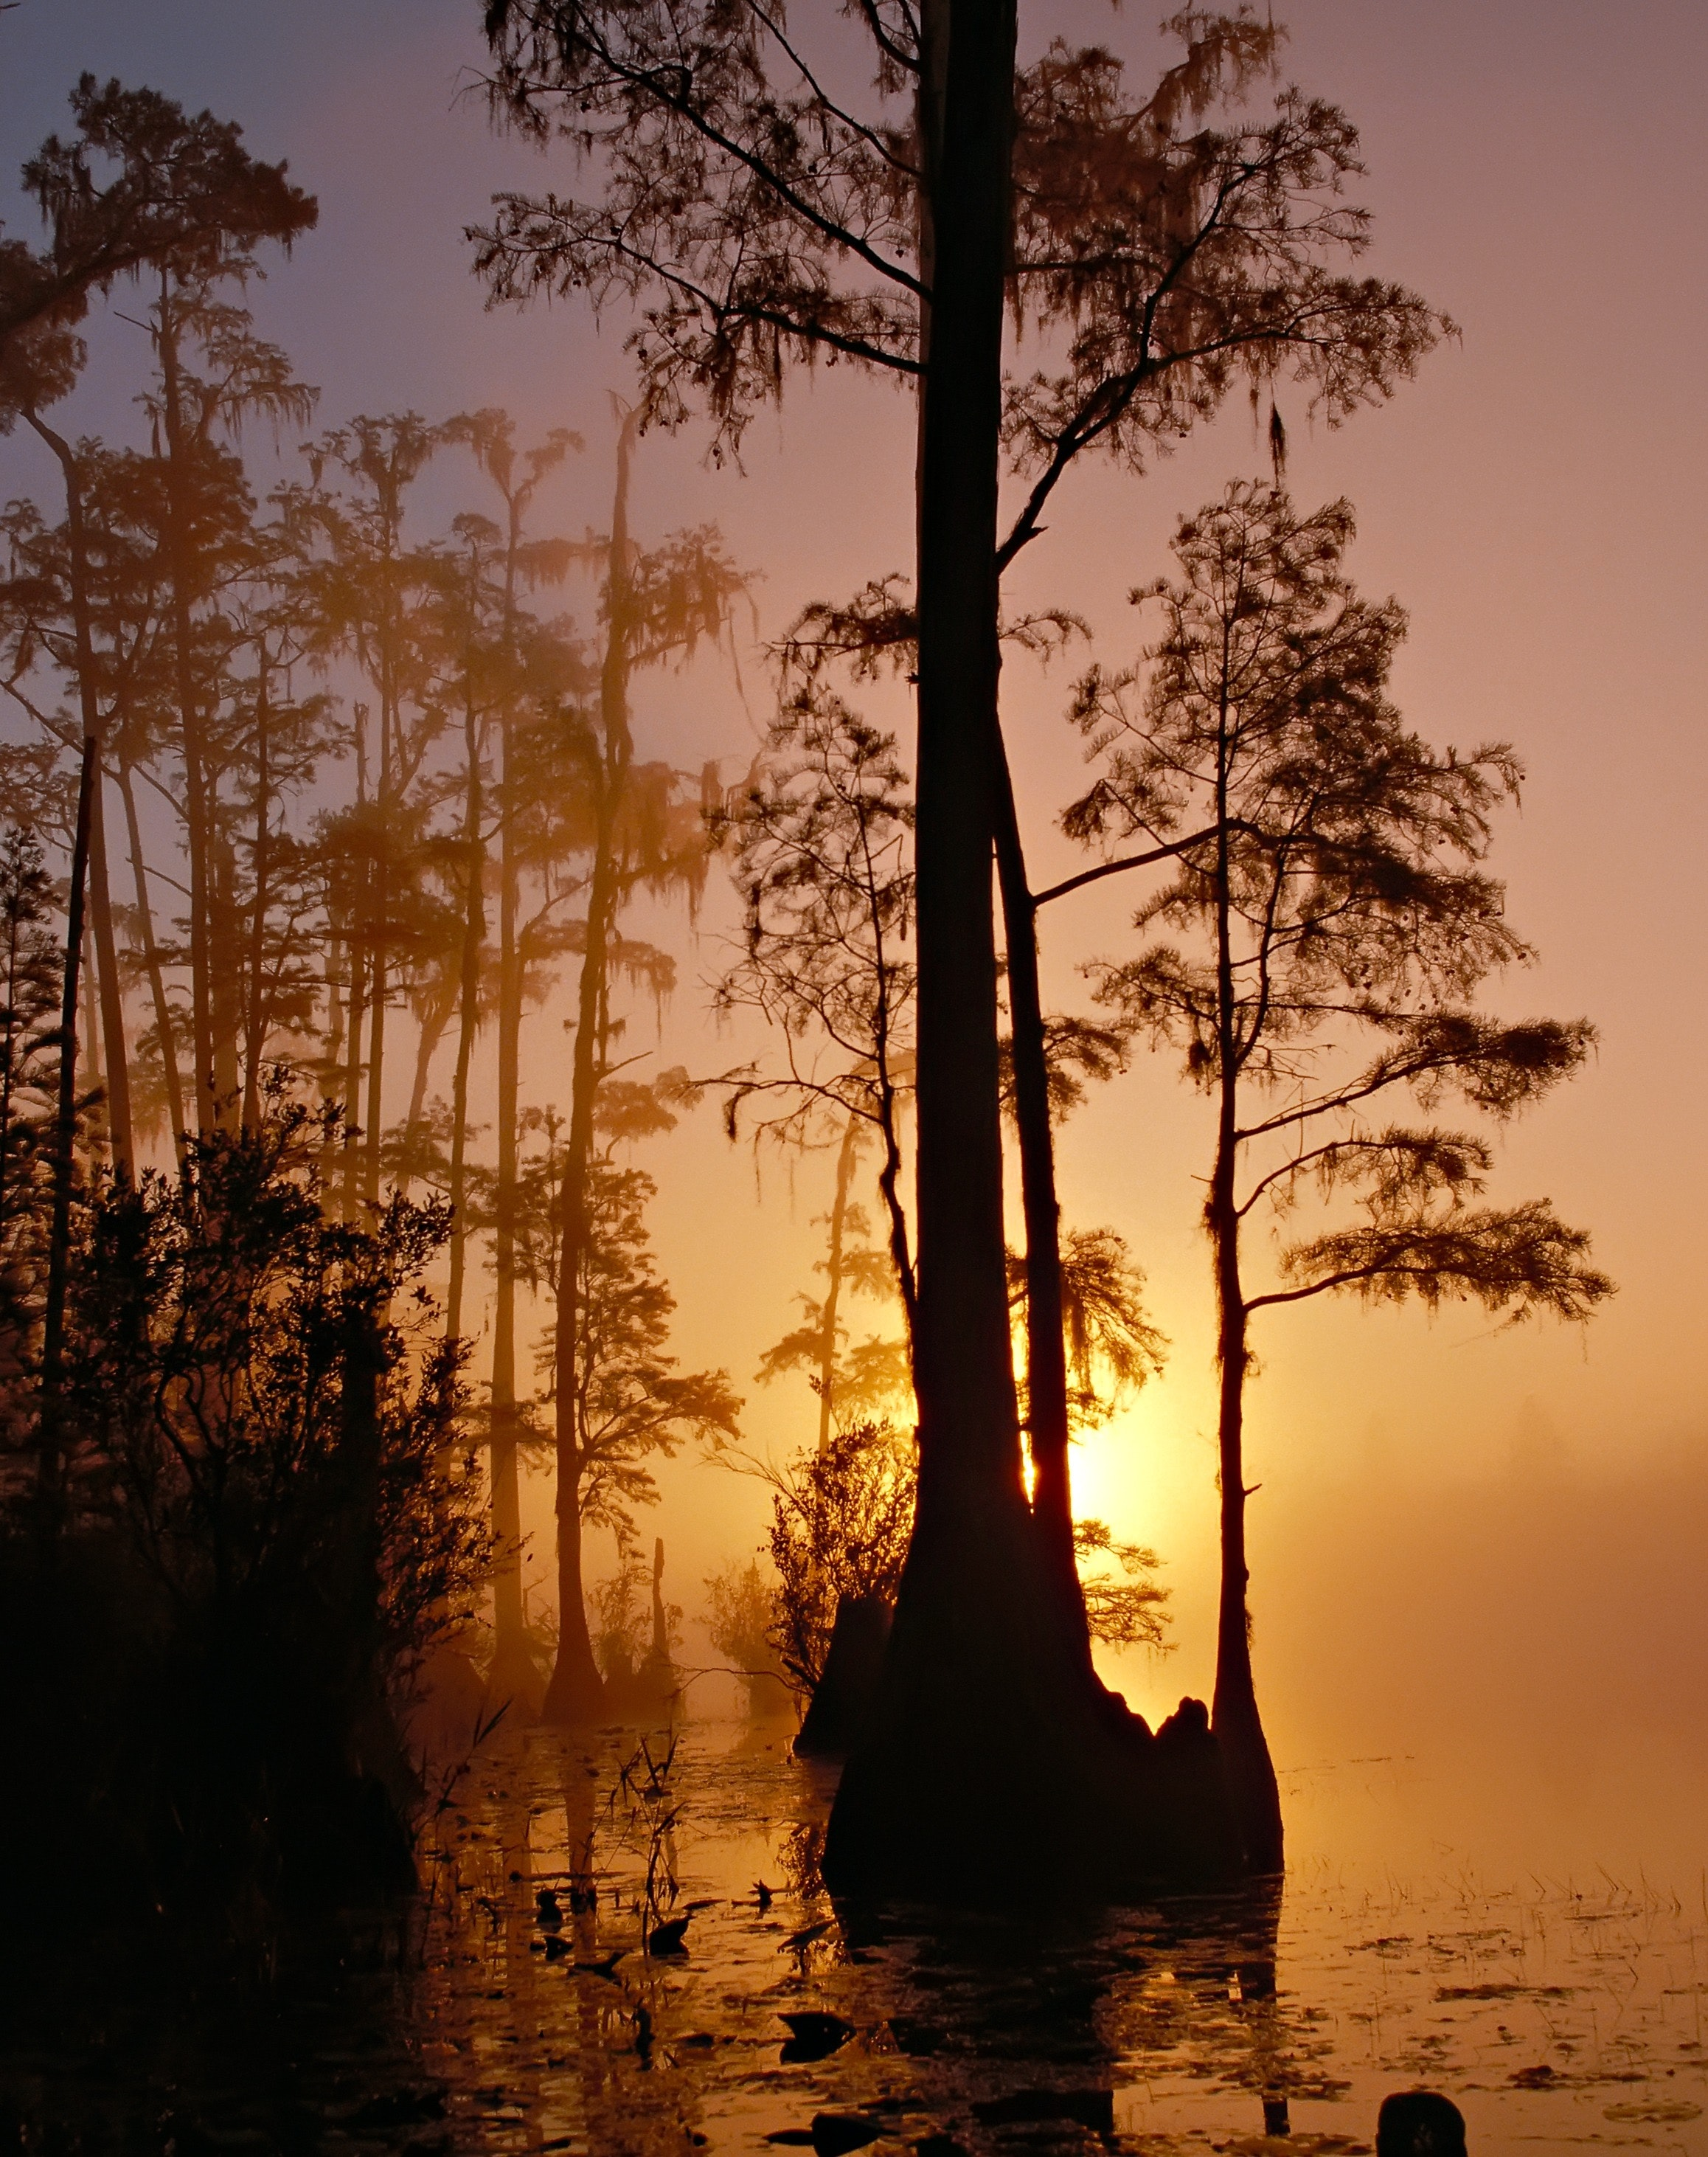 Silhouette of Trees Beside Body of Water during Sunset, Mist, Silhouette, Sunrise, Sunset, HQ Photo